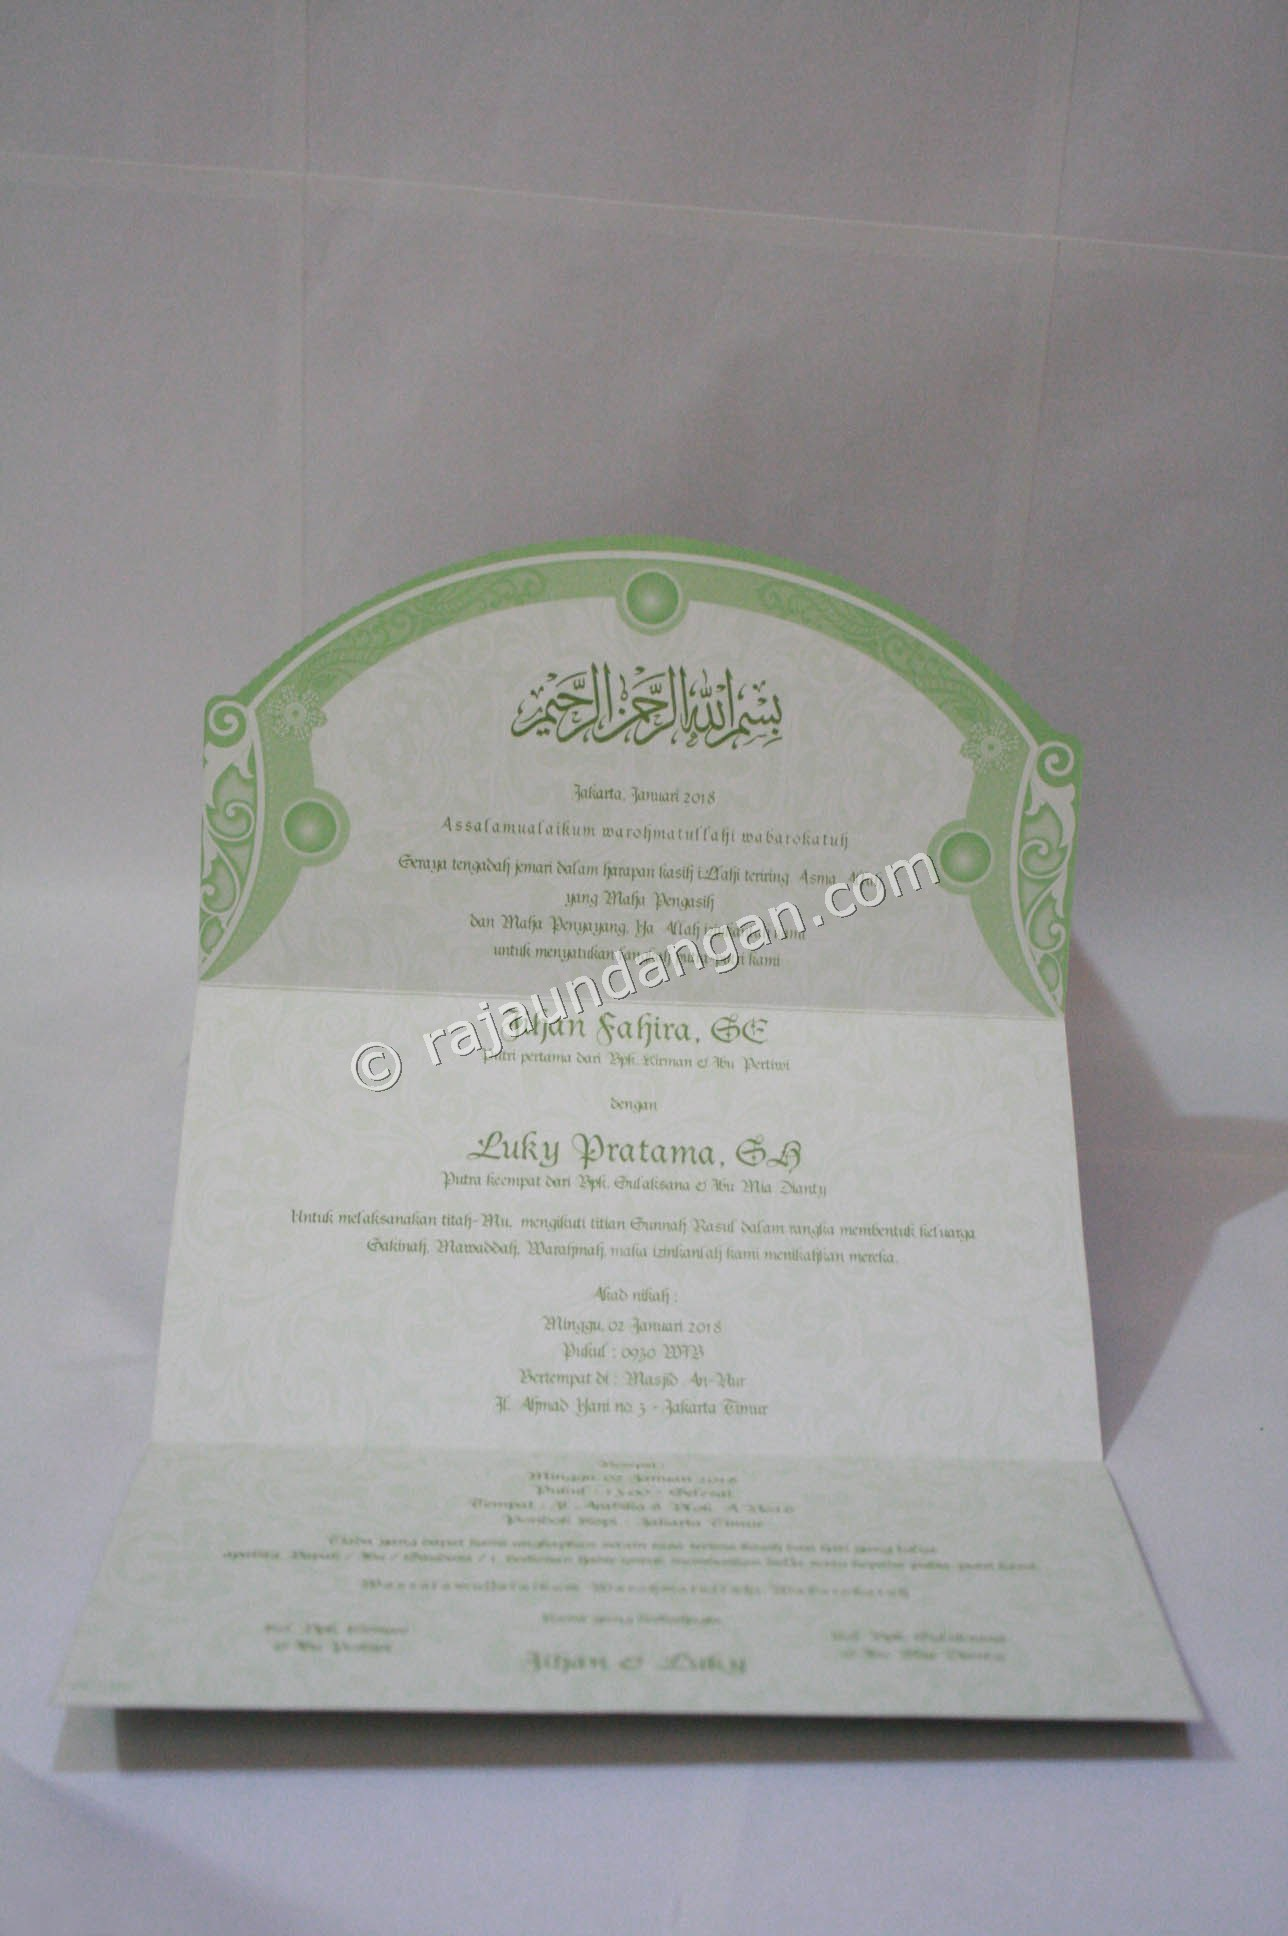 Undangan Pernikahan Softcover Jihan dan Luky 3 - Percetakan Wedding Invitations Unik dan Simple di Simomulyo